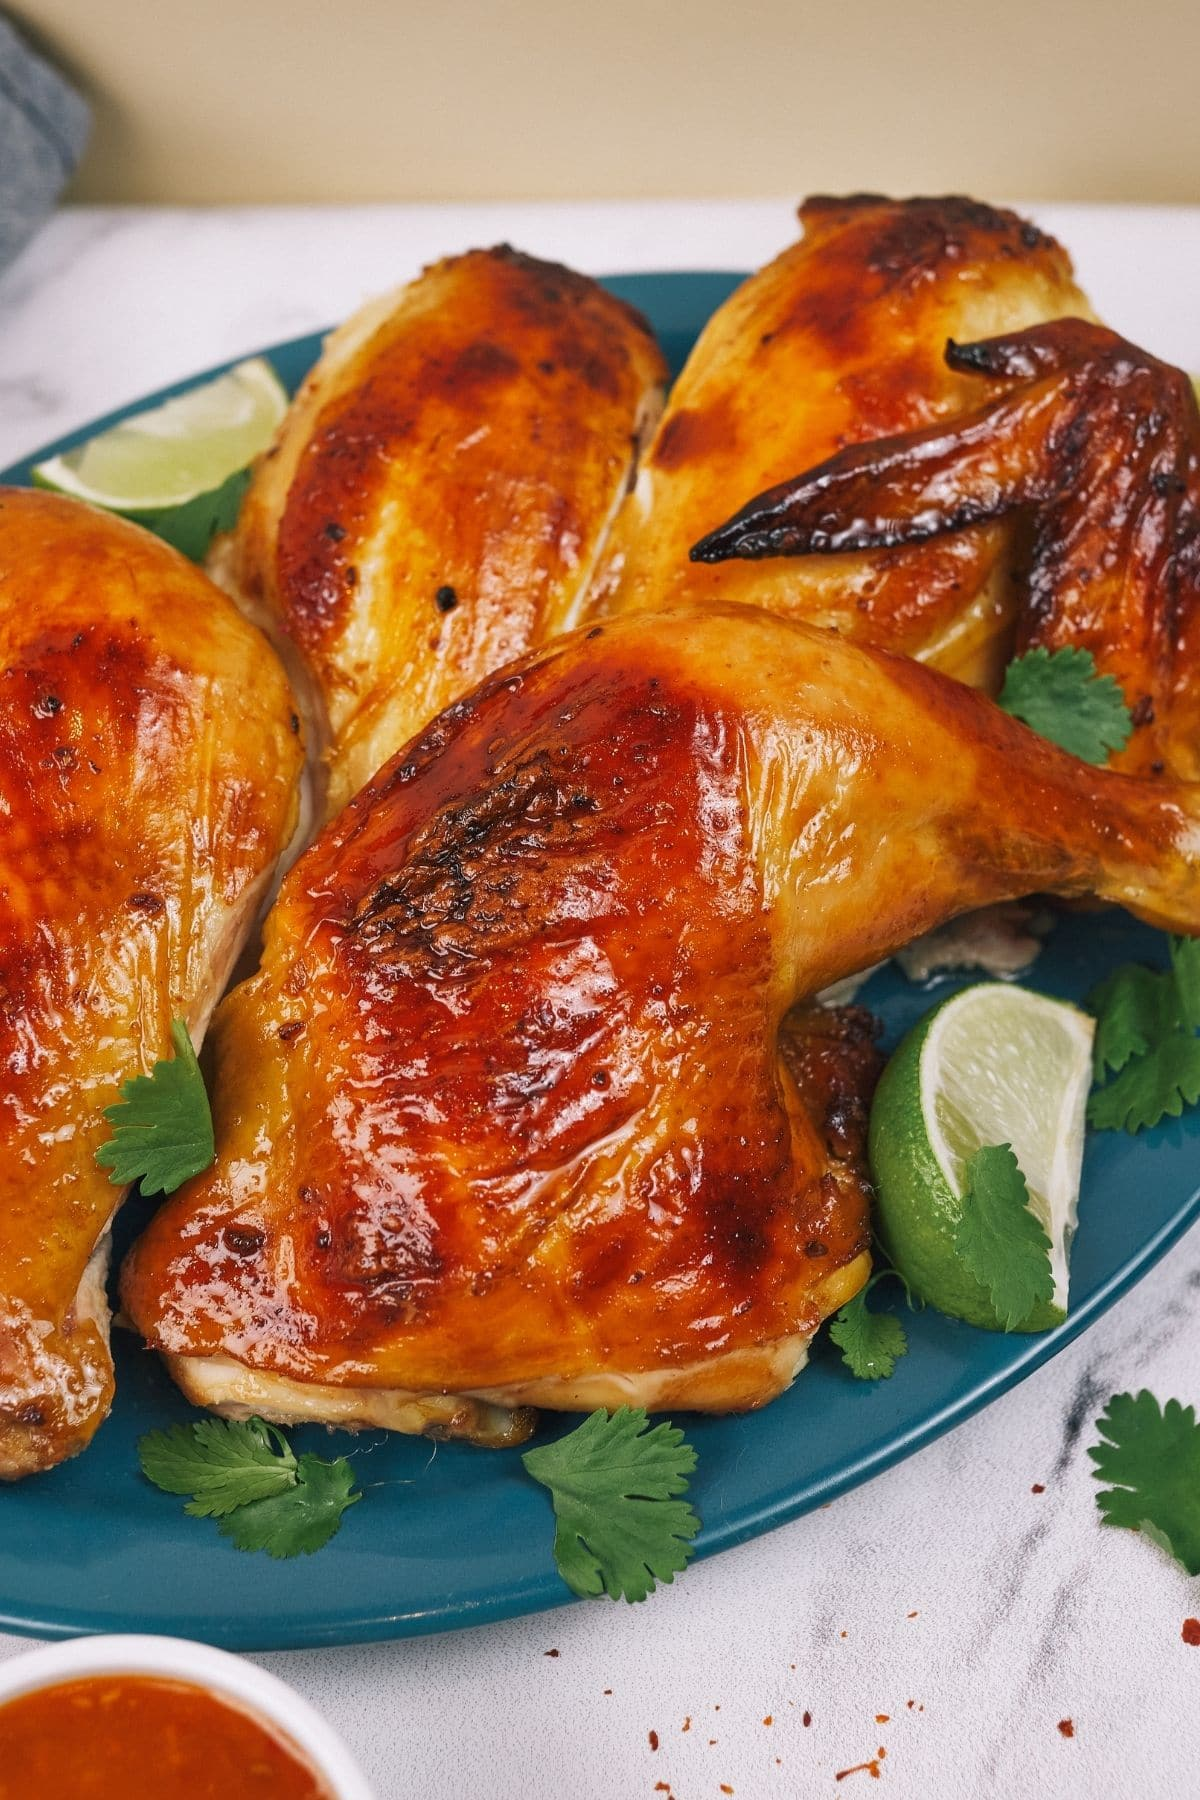 Roasted chicken leg quarters on teal plate with lime wedges